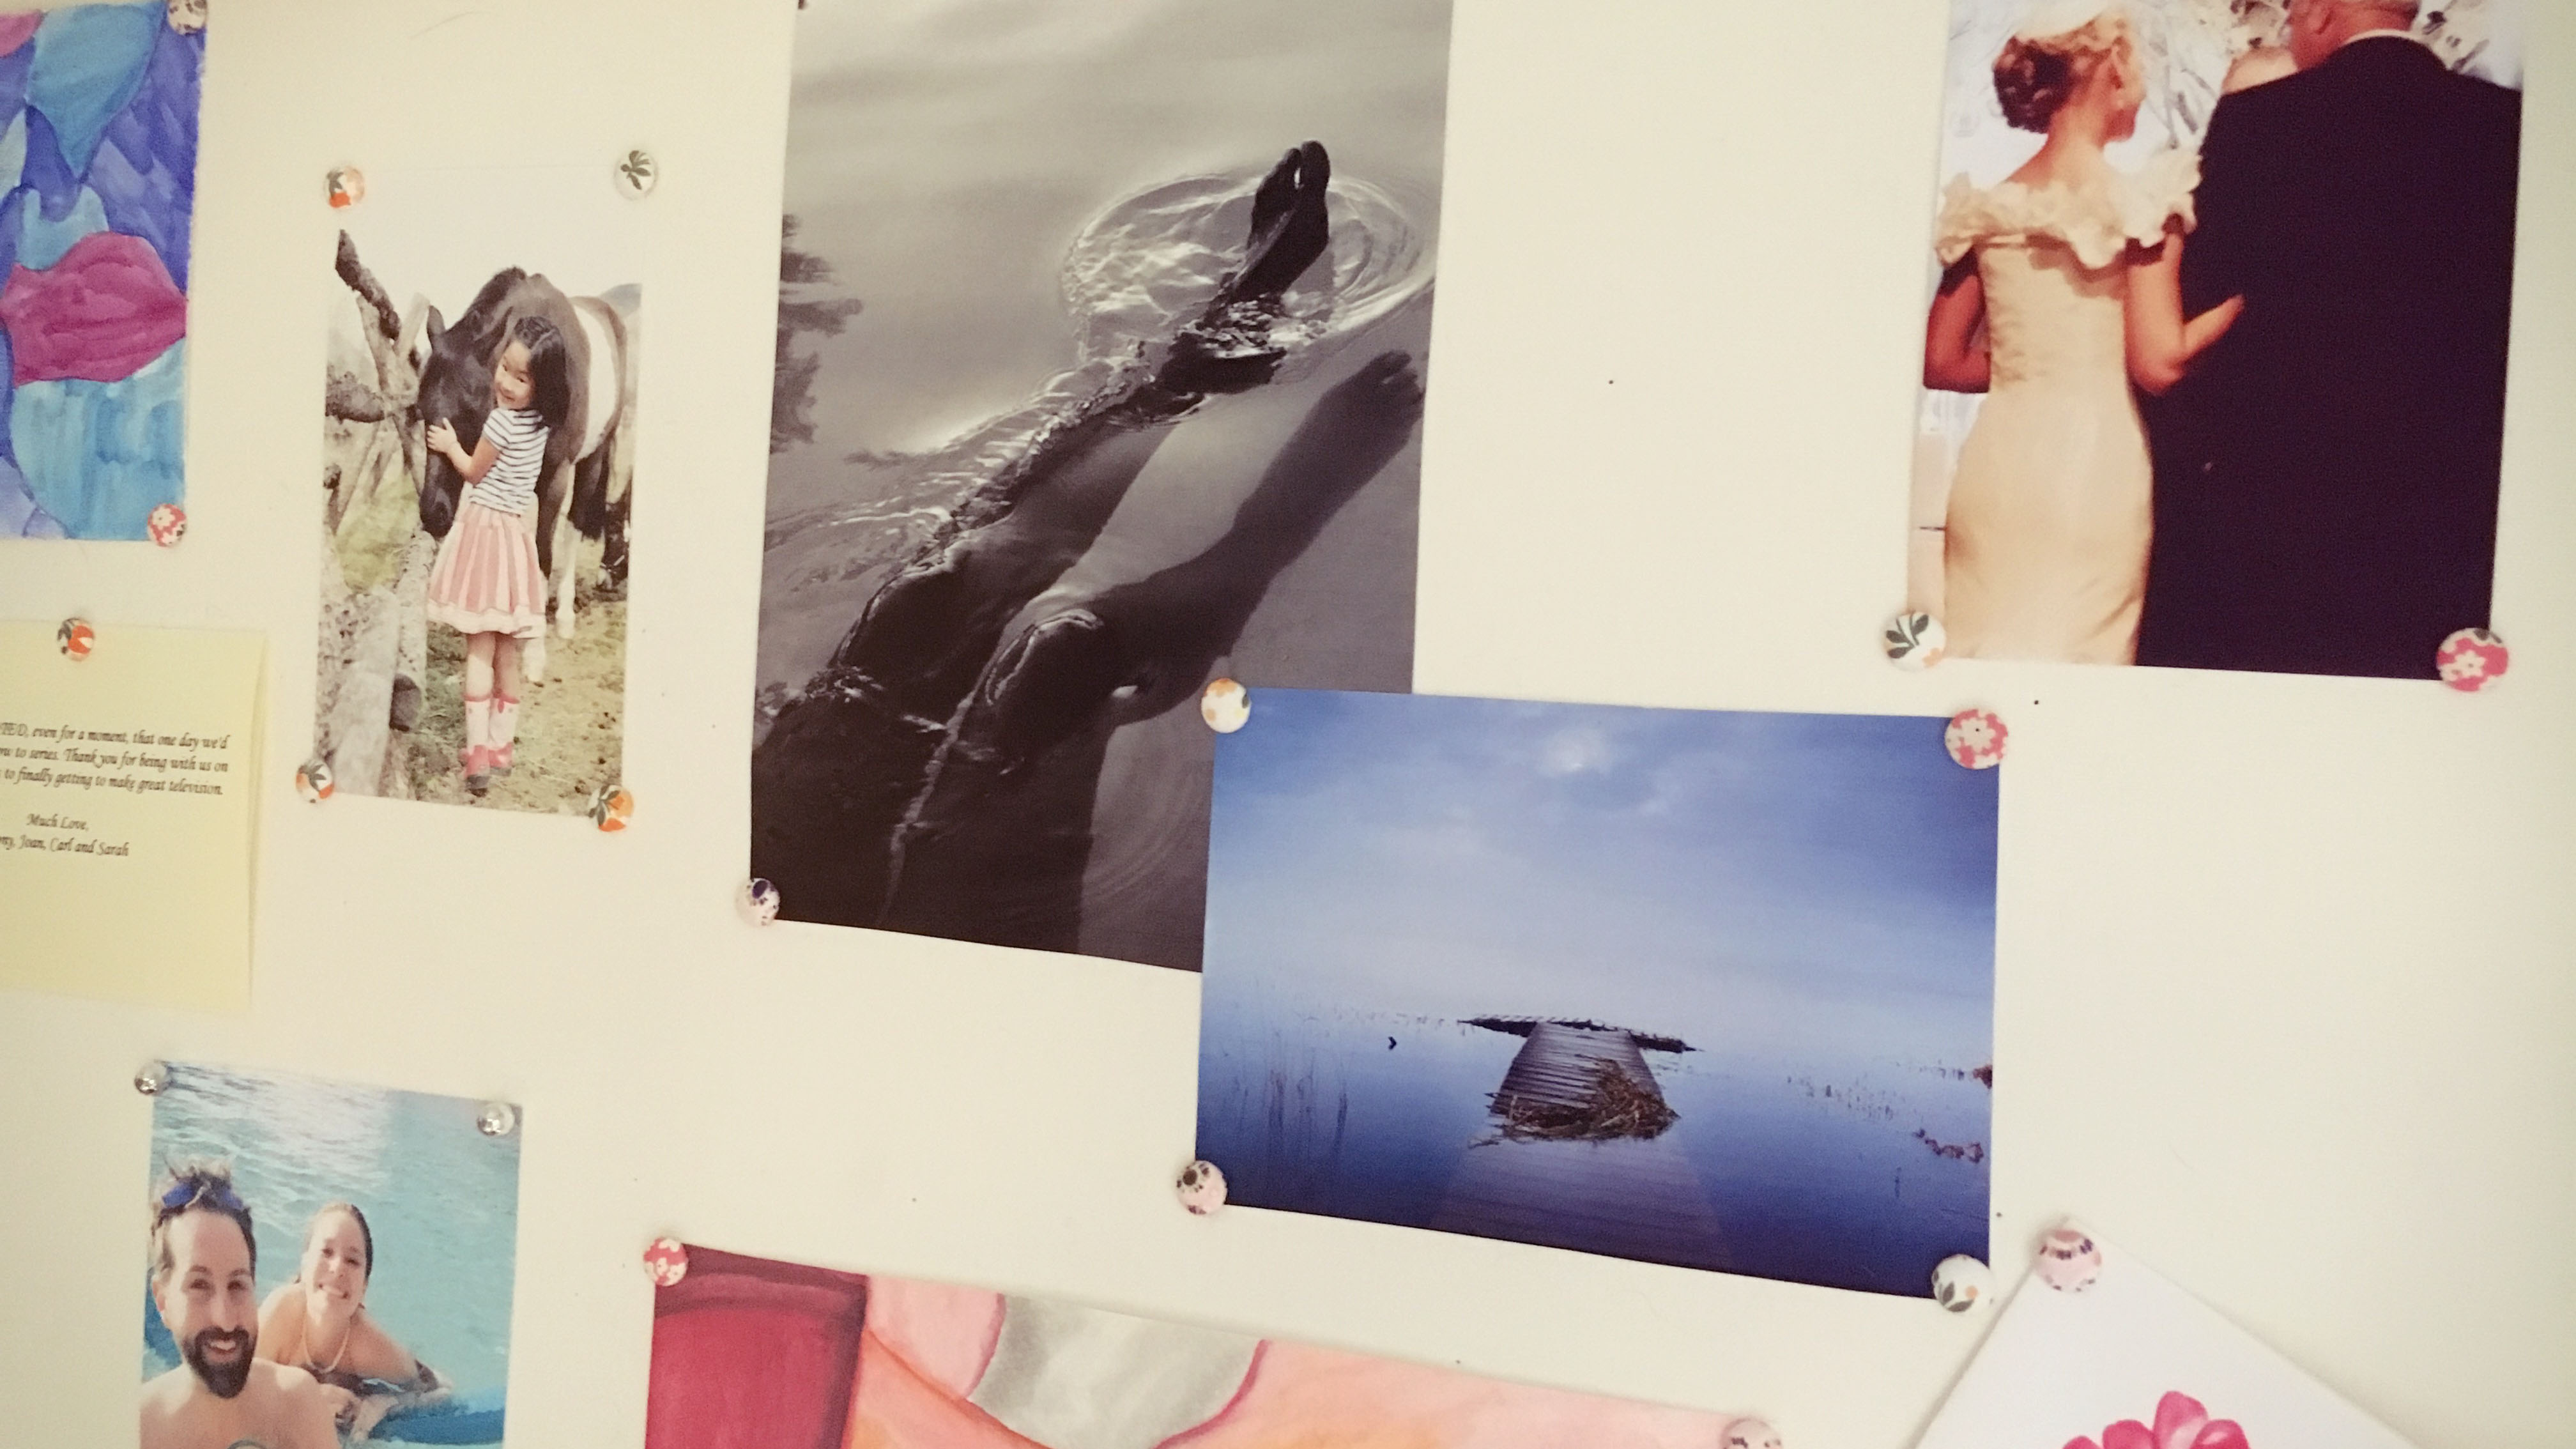 I wanted to include some tranquil water images among the family photos to inspire inner peace and serenity.